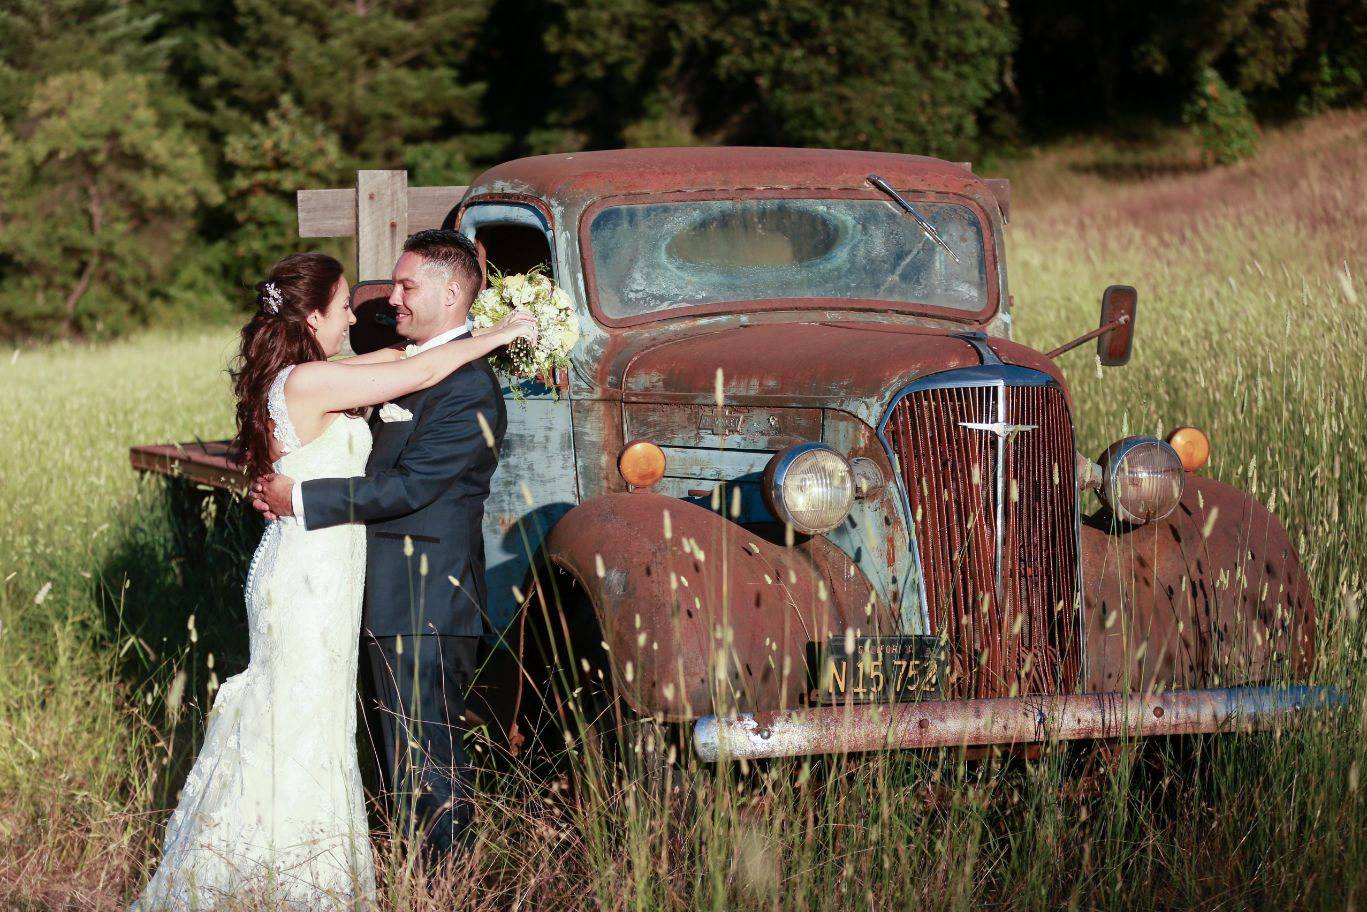 41 photo opportunities rustic mountain house estate weddingi venues northern california